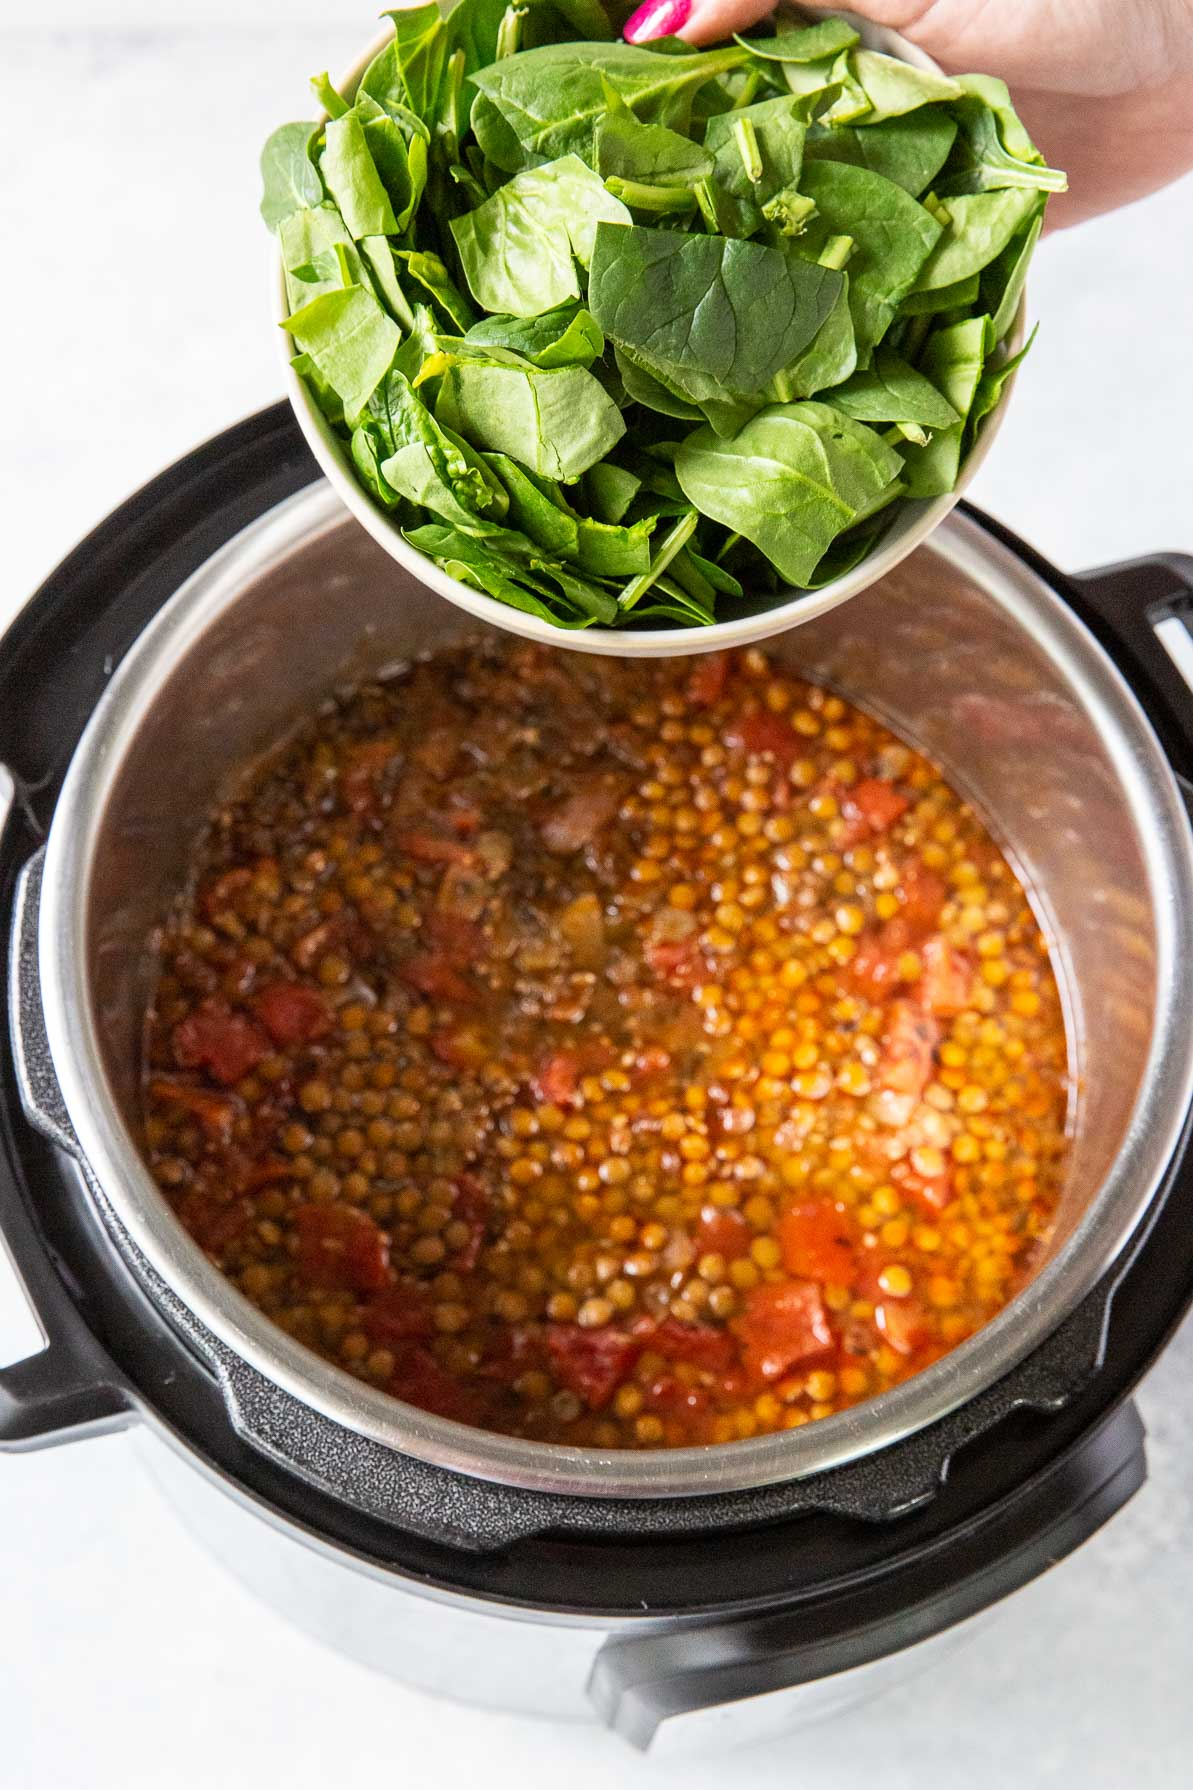 adding spinach to cooked soup